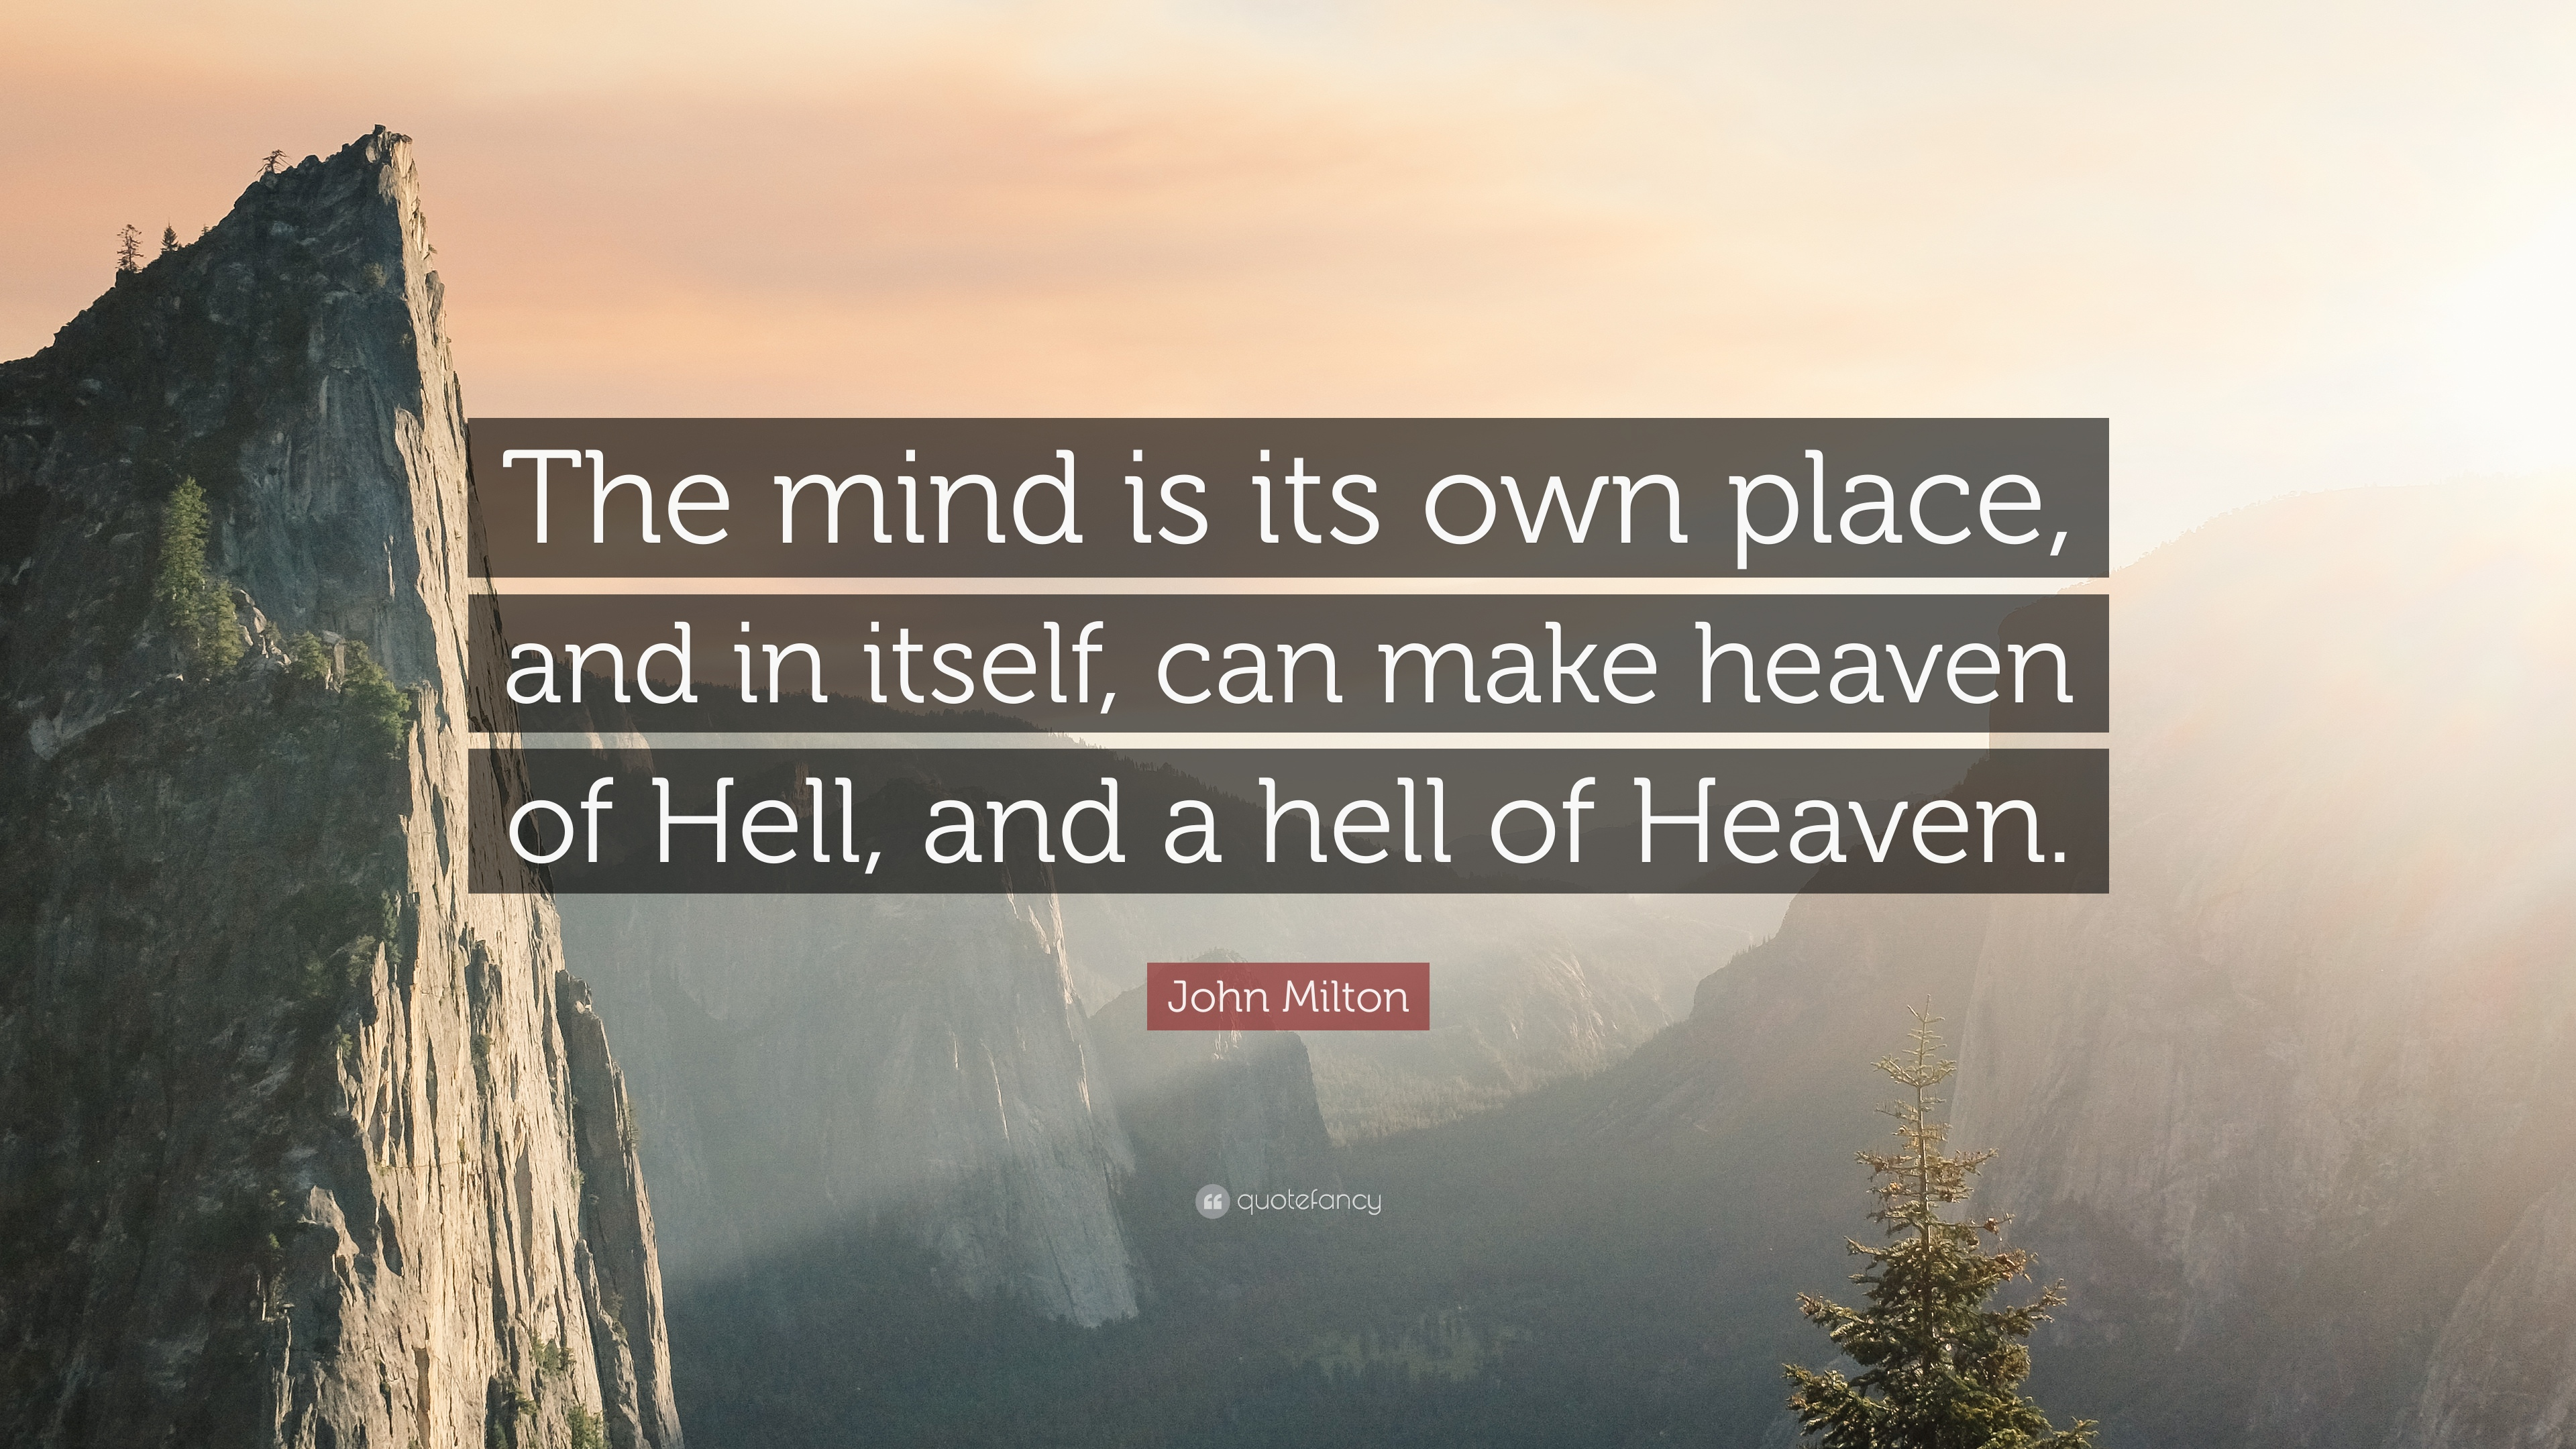 Can Make A Heaven Of Hell A Hell Of Heaven Quotes, Quotations & Sayings 2018